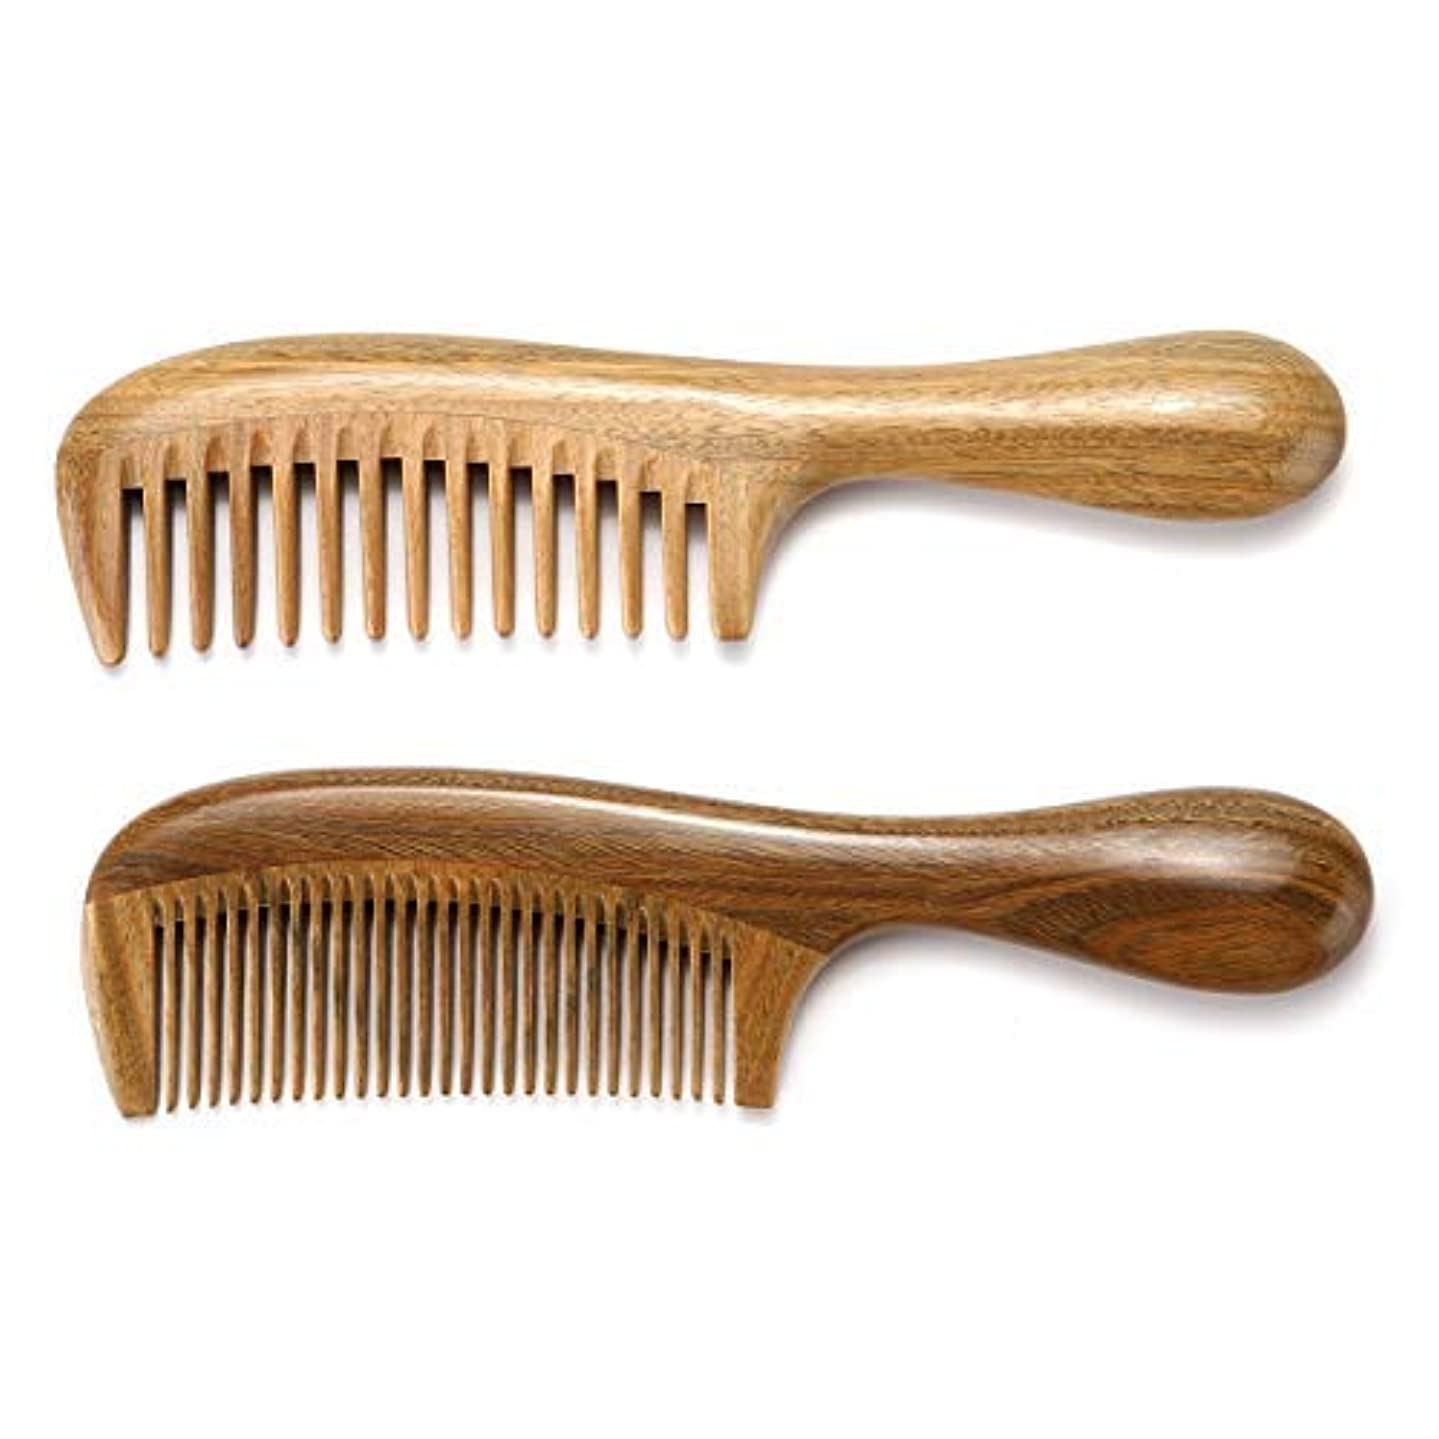 延期する頼むそしてHandmade Wooden Hair Comb Set Gift Box Natural Green Sandalwood Anti-Static Fine & Wide Tooth Hair Combs for Men...